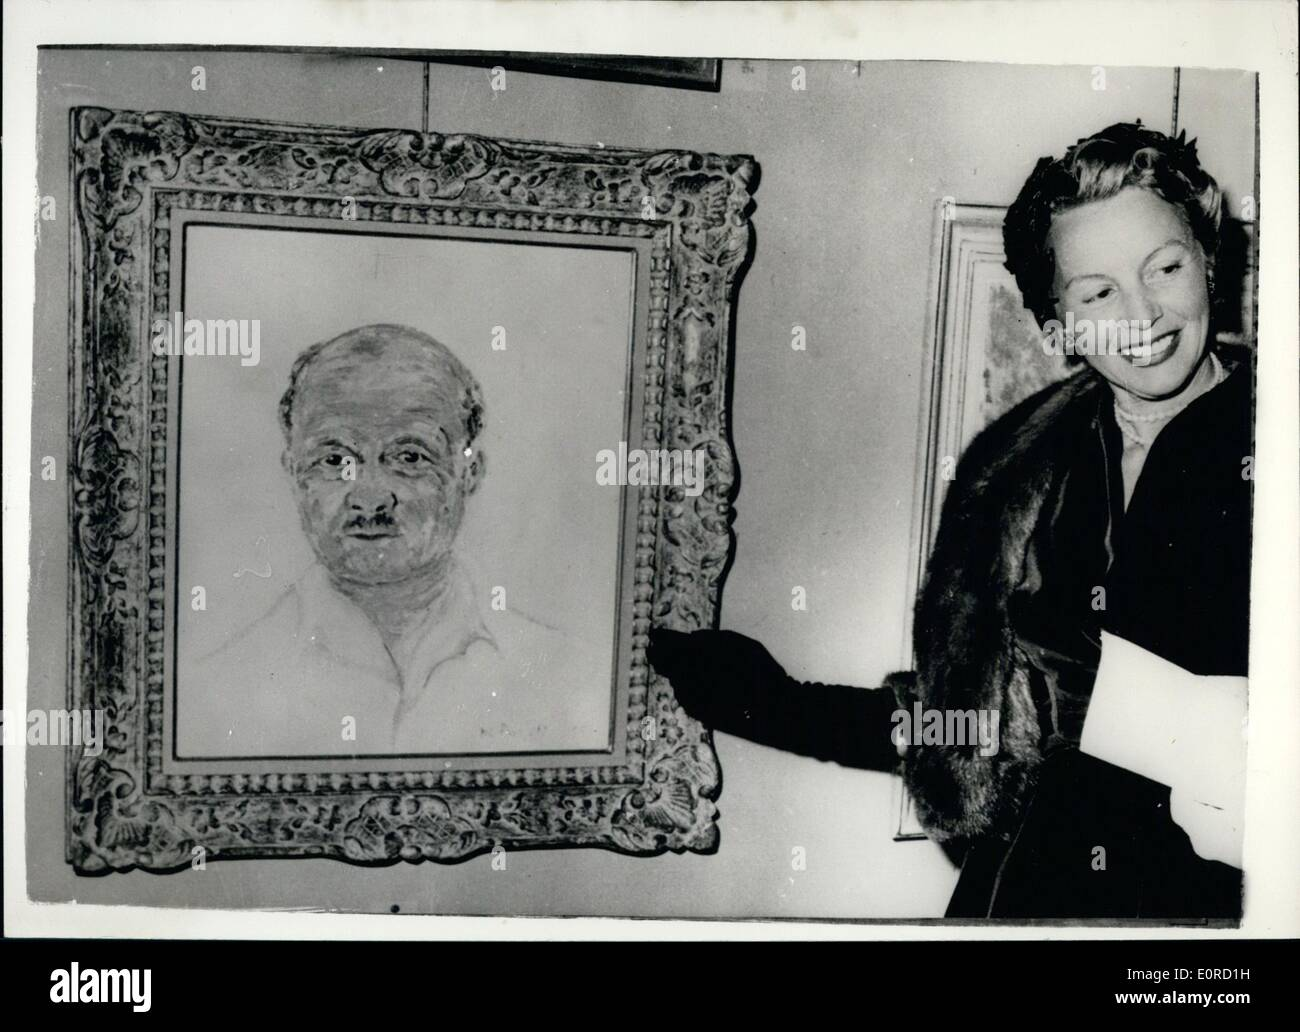 Feb. 02, 1959 - White Russian Countess Charged in ''Rosebud Ballet Scandal'' In Paris.: Madame Lily De Pinaeff - a 46 year old hite Russian Countess has been charged in Paris with offences against public morality in connection with the Rosebud Ballet Scandal in which teenage girls are alleged to have been recruited for orgies at the homes of social and political notables One of the notables mentioned in the case - is M. Andre Le Troquer a president of the National Assembly for three terms - until he was defected the last election. He categorically denies all the charges - Stock Image